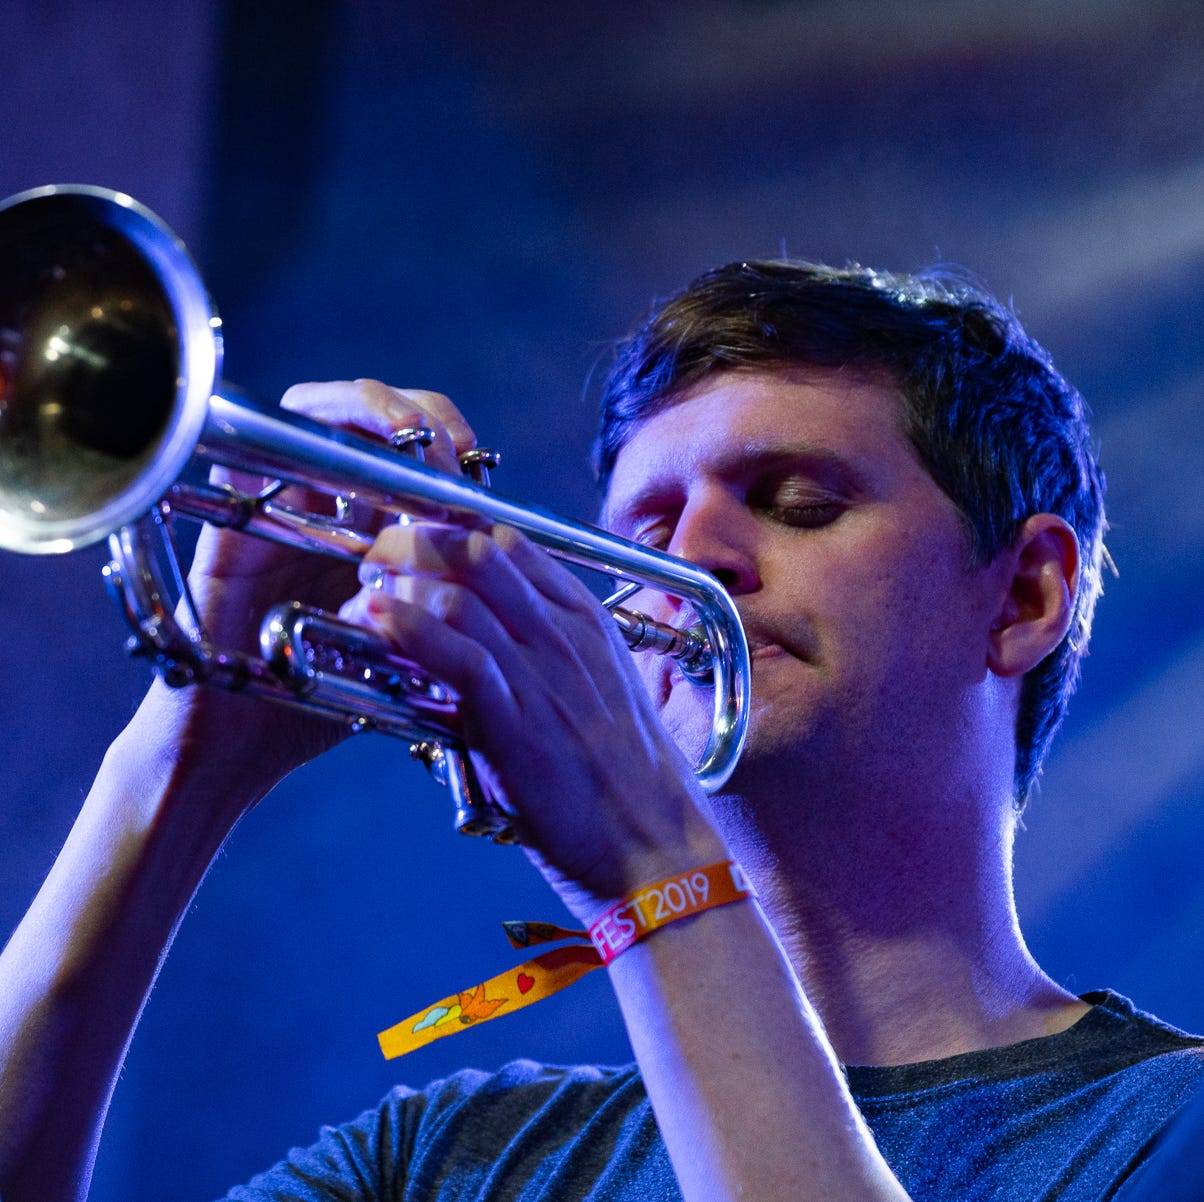 Mike Maher co-founded Snarky Puppy with his college buddies. Three Grammys later, he's coming home to play.